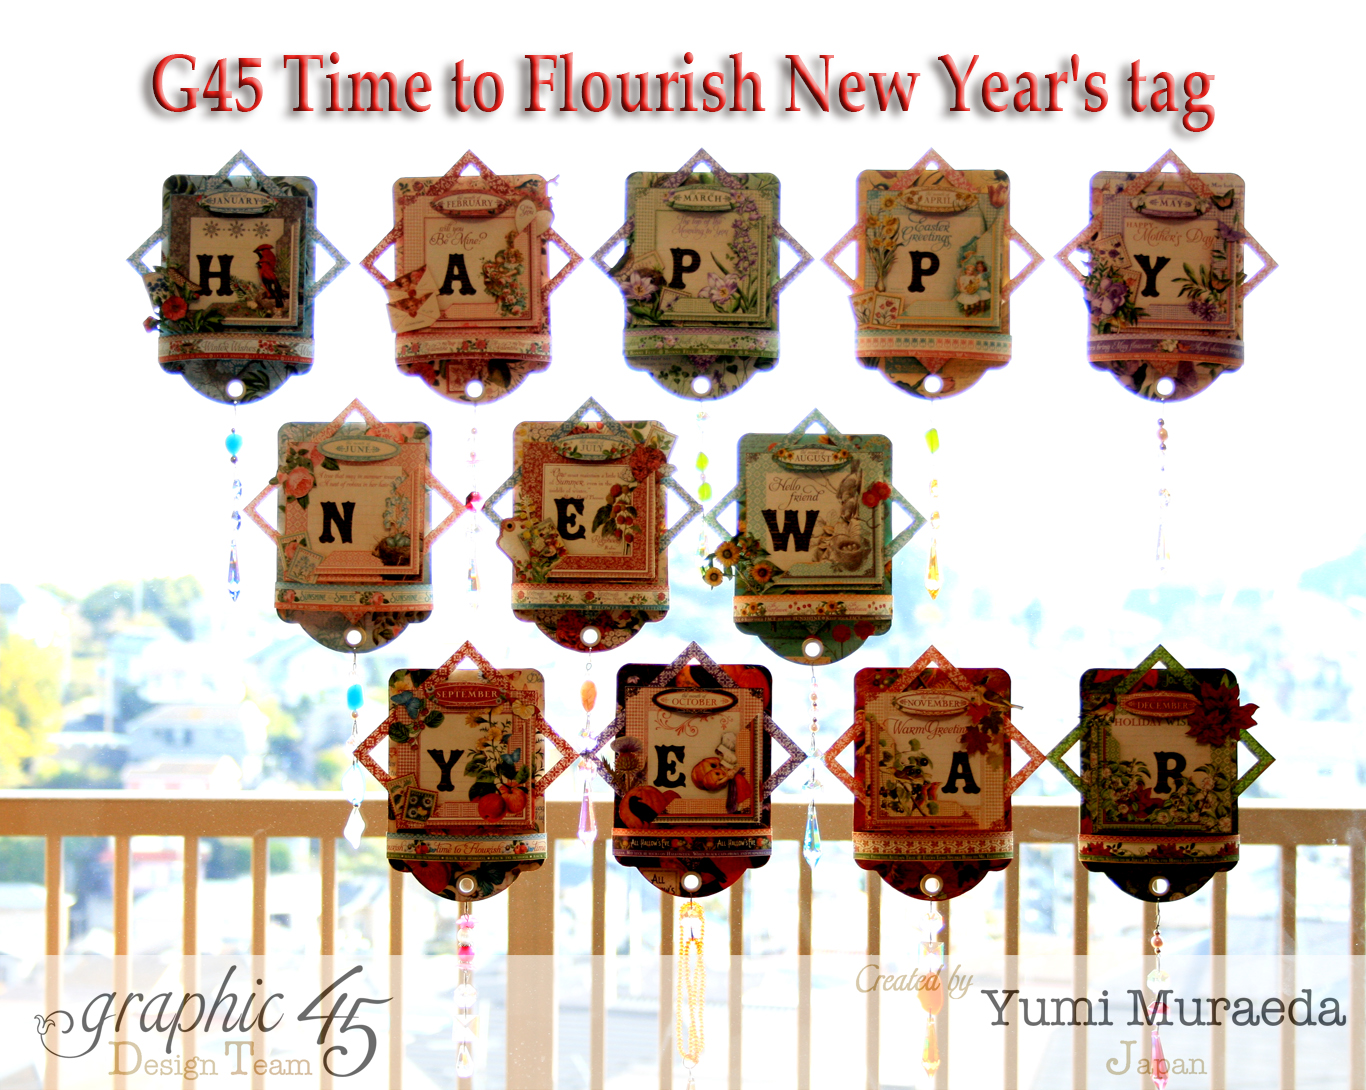 yuyu3-Time to flourish New Years tag3